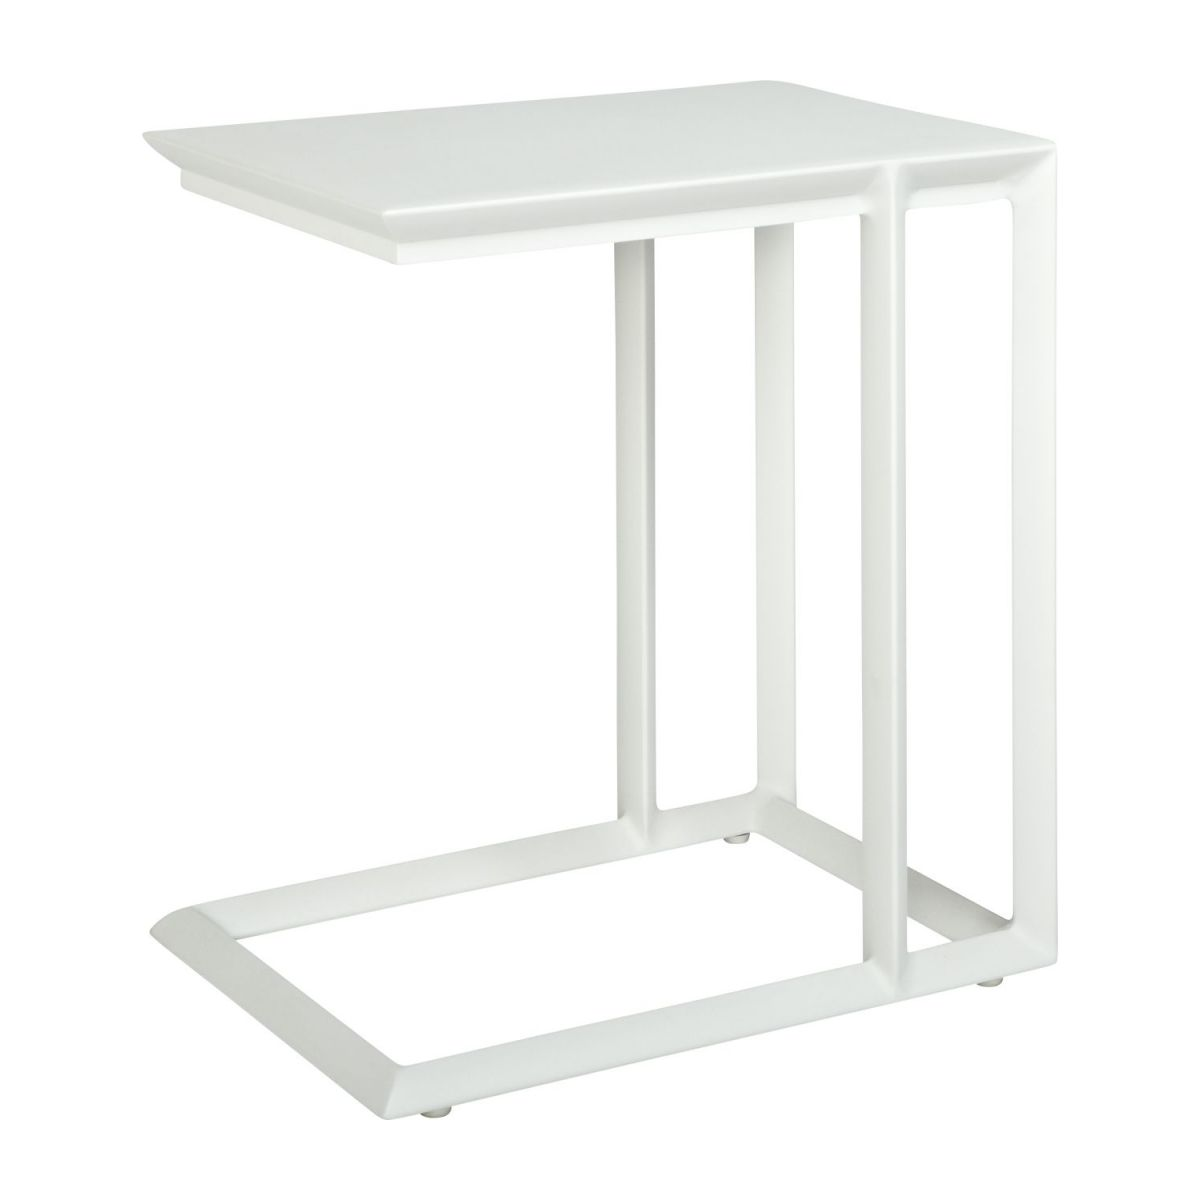 Table D Appoint Blanche Blanche Table D 39appoint Habitat